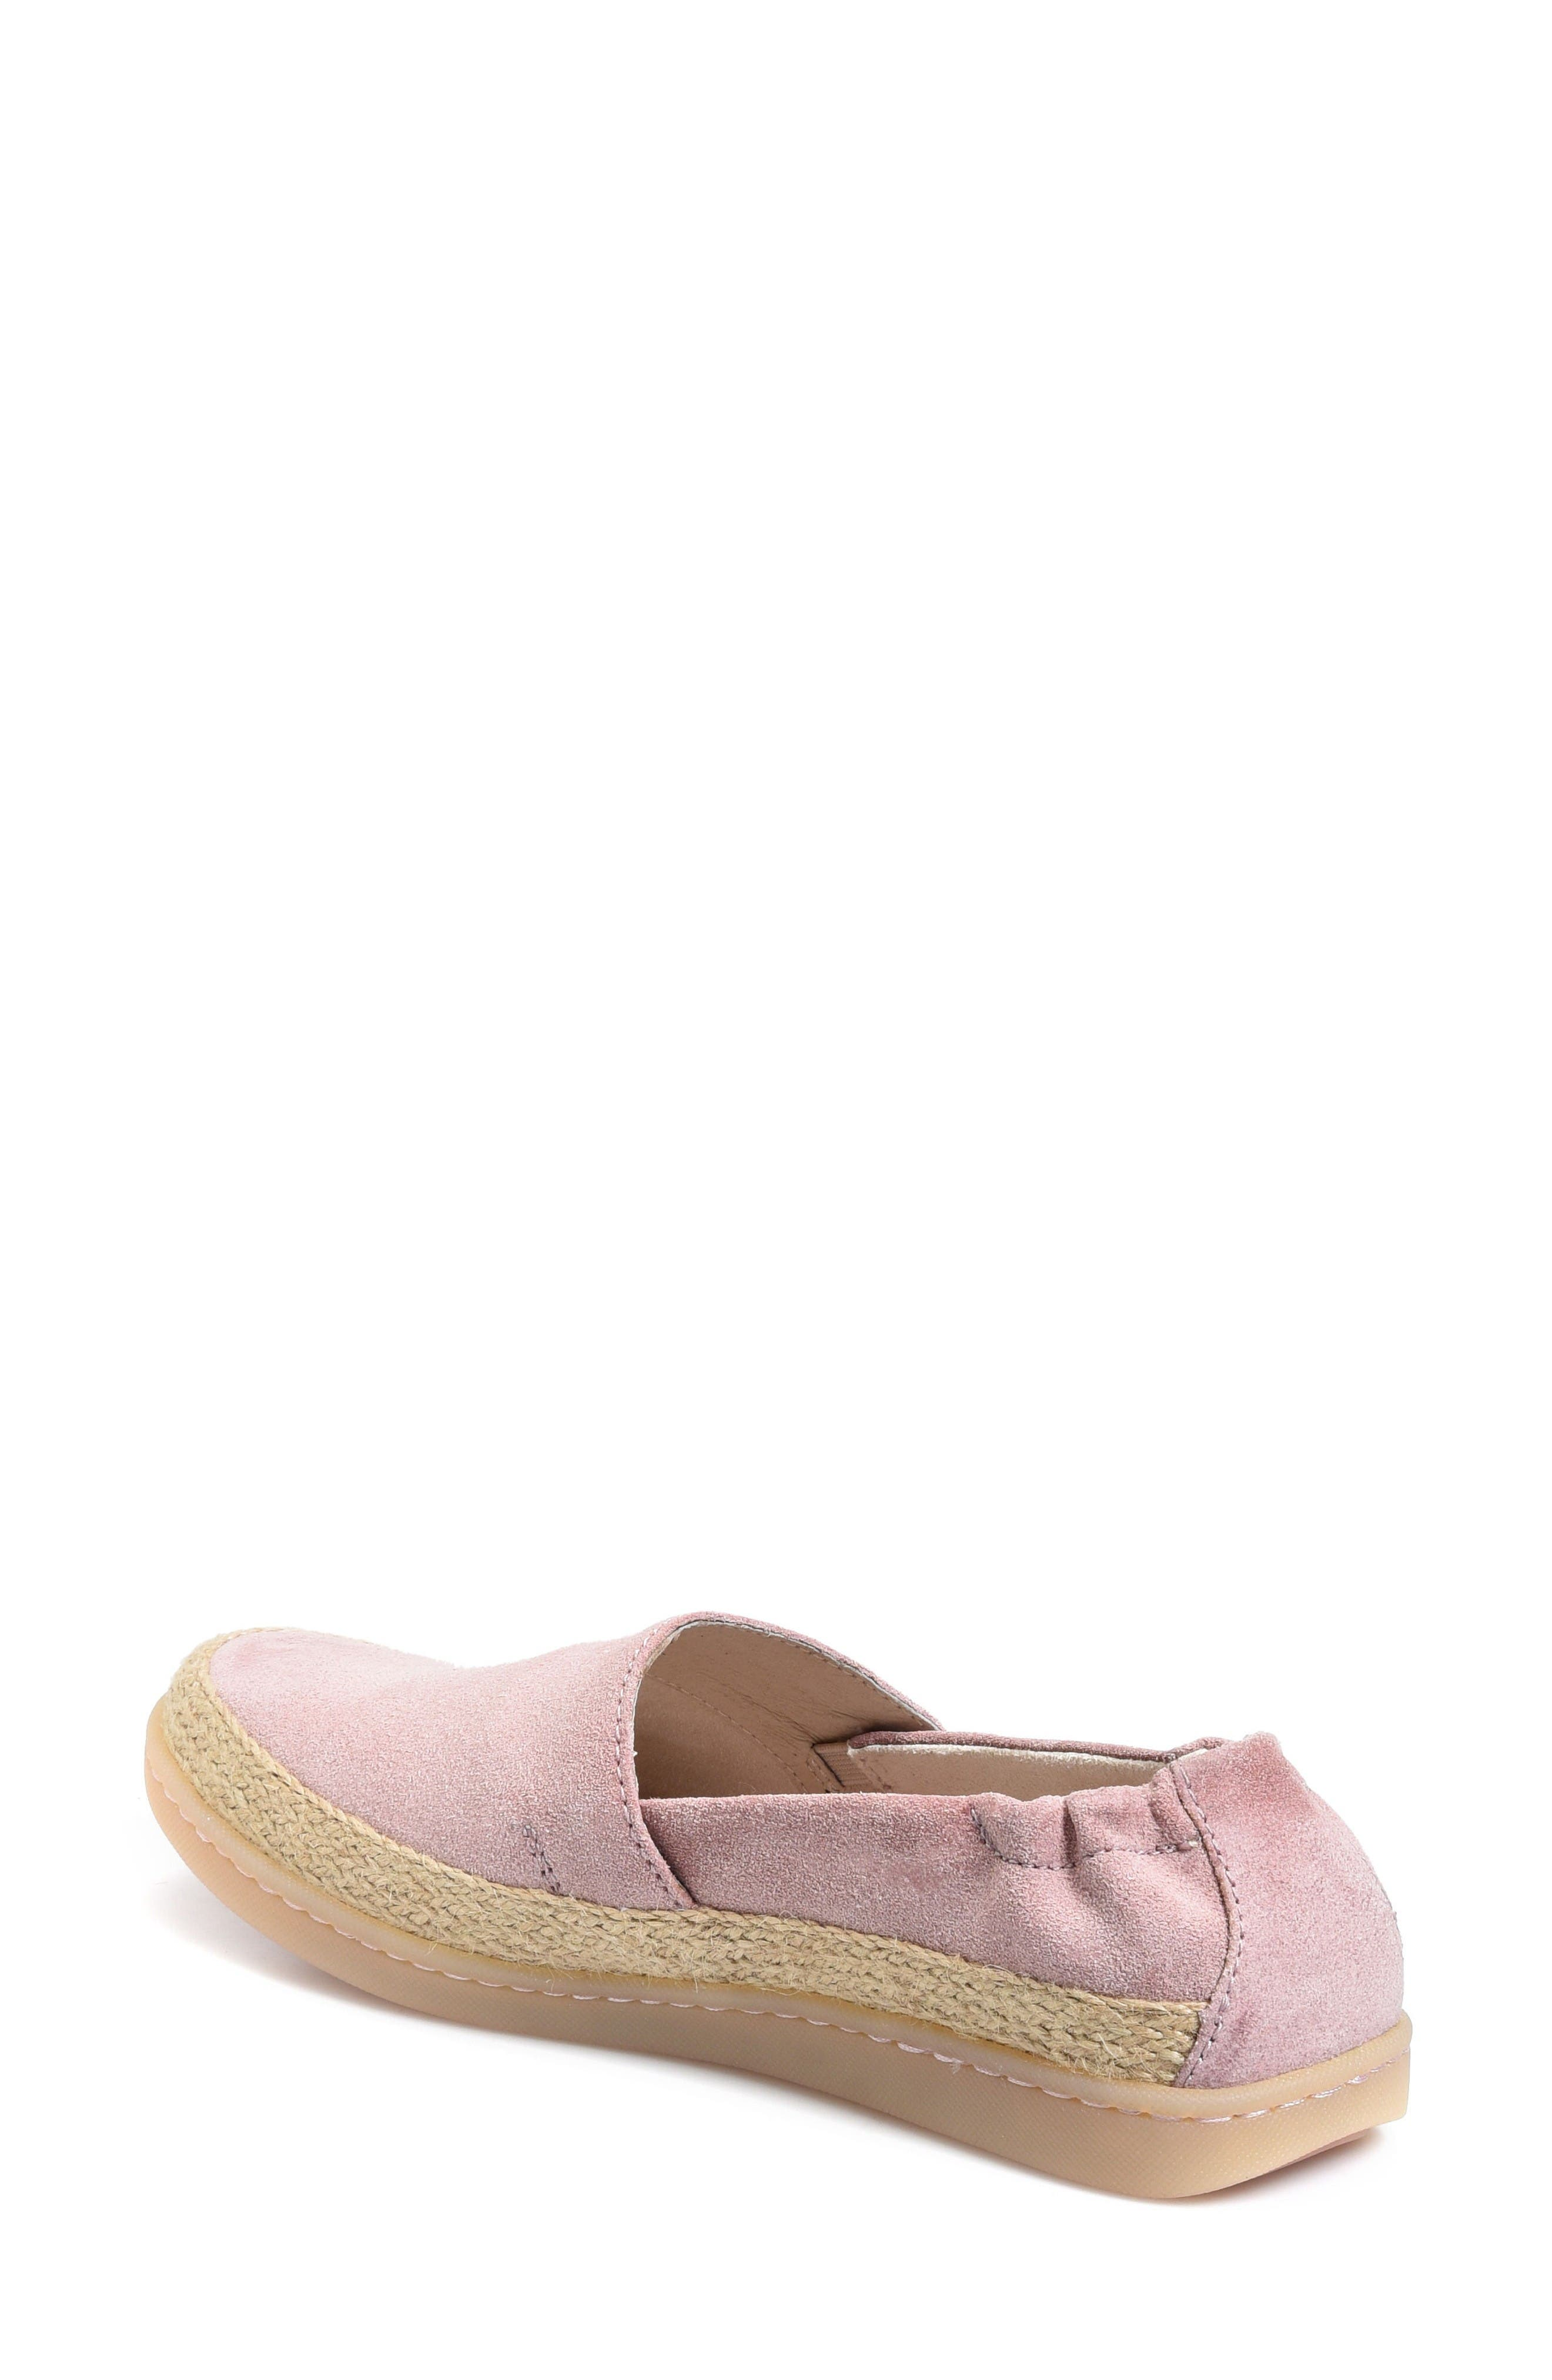 Castries Flat,                             Alternate thumbnail 2, color,                             Pink Suede